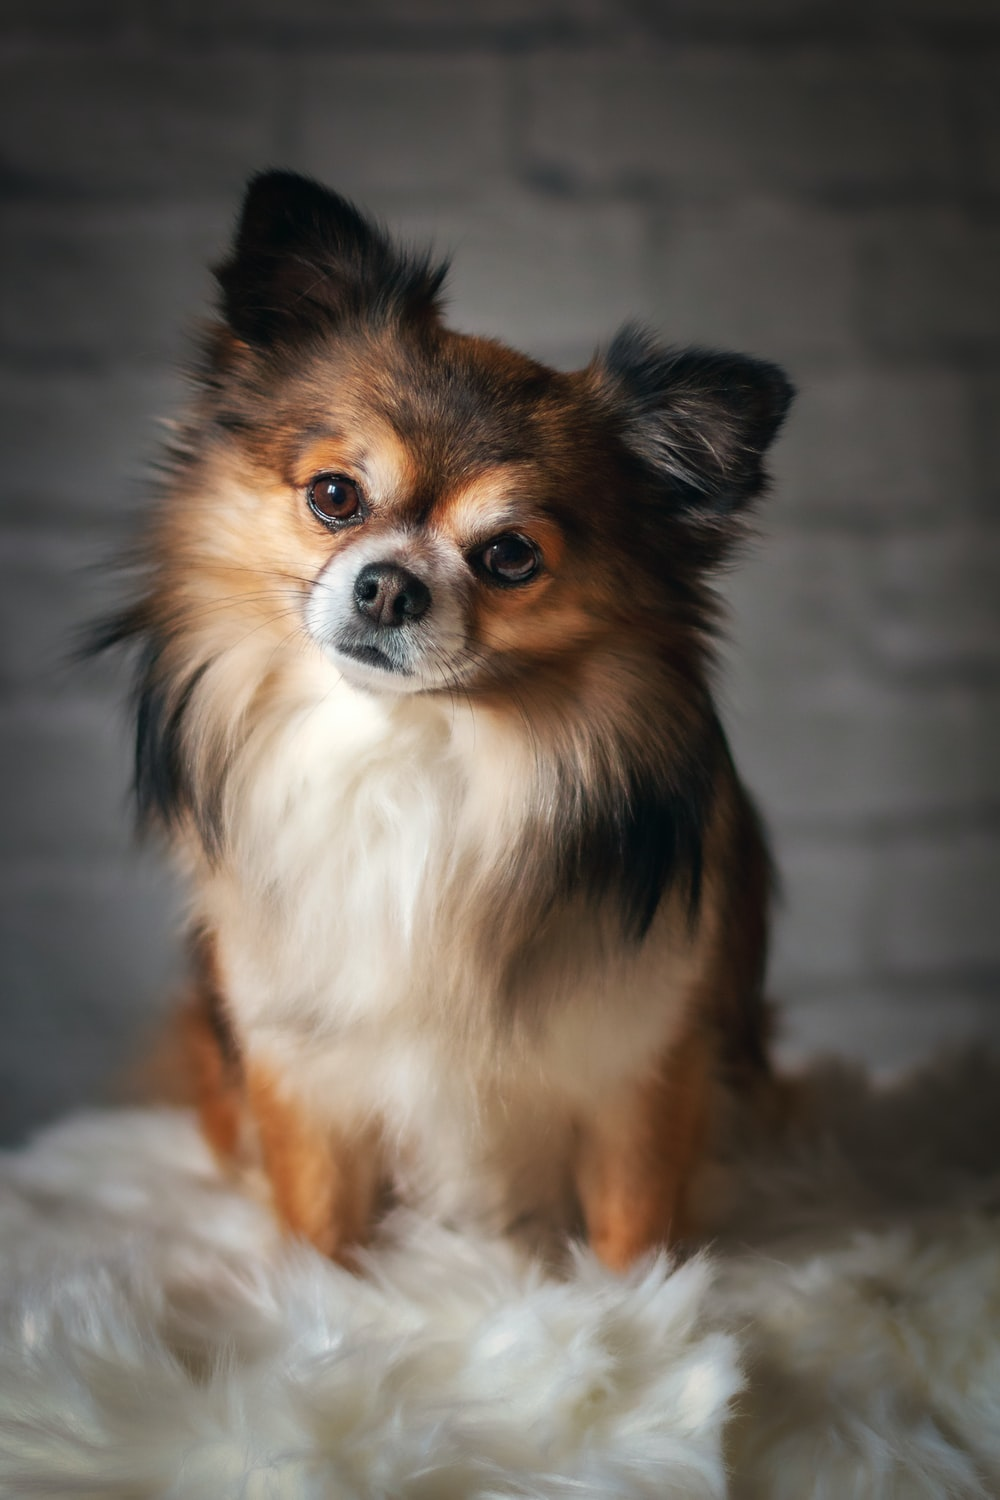 brown long haired dog on white textile